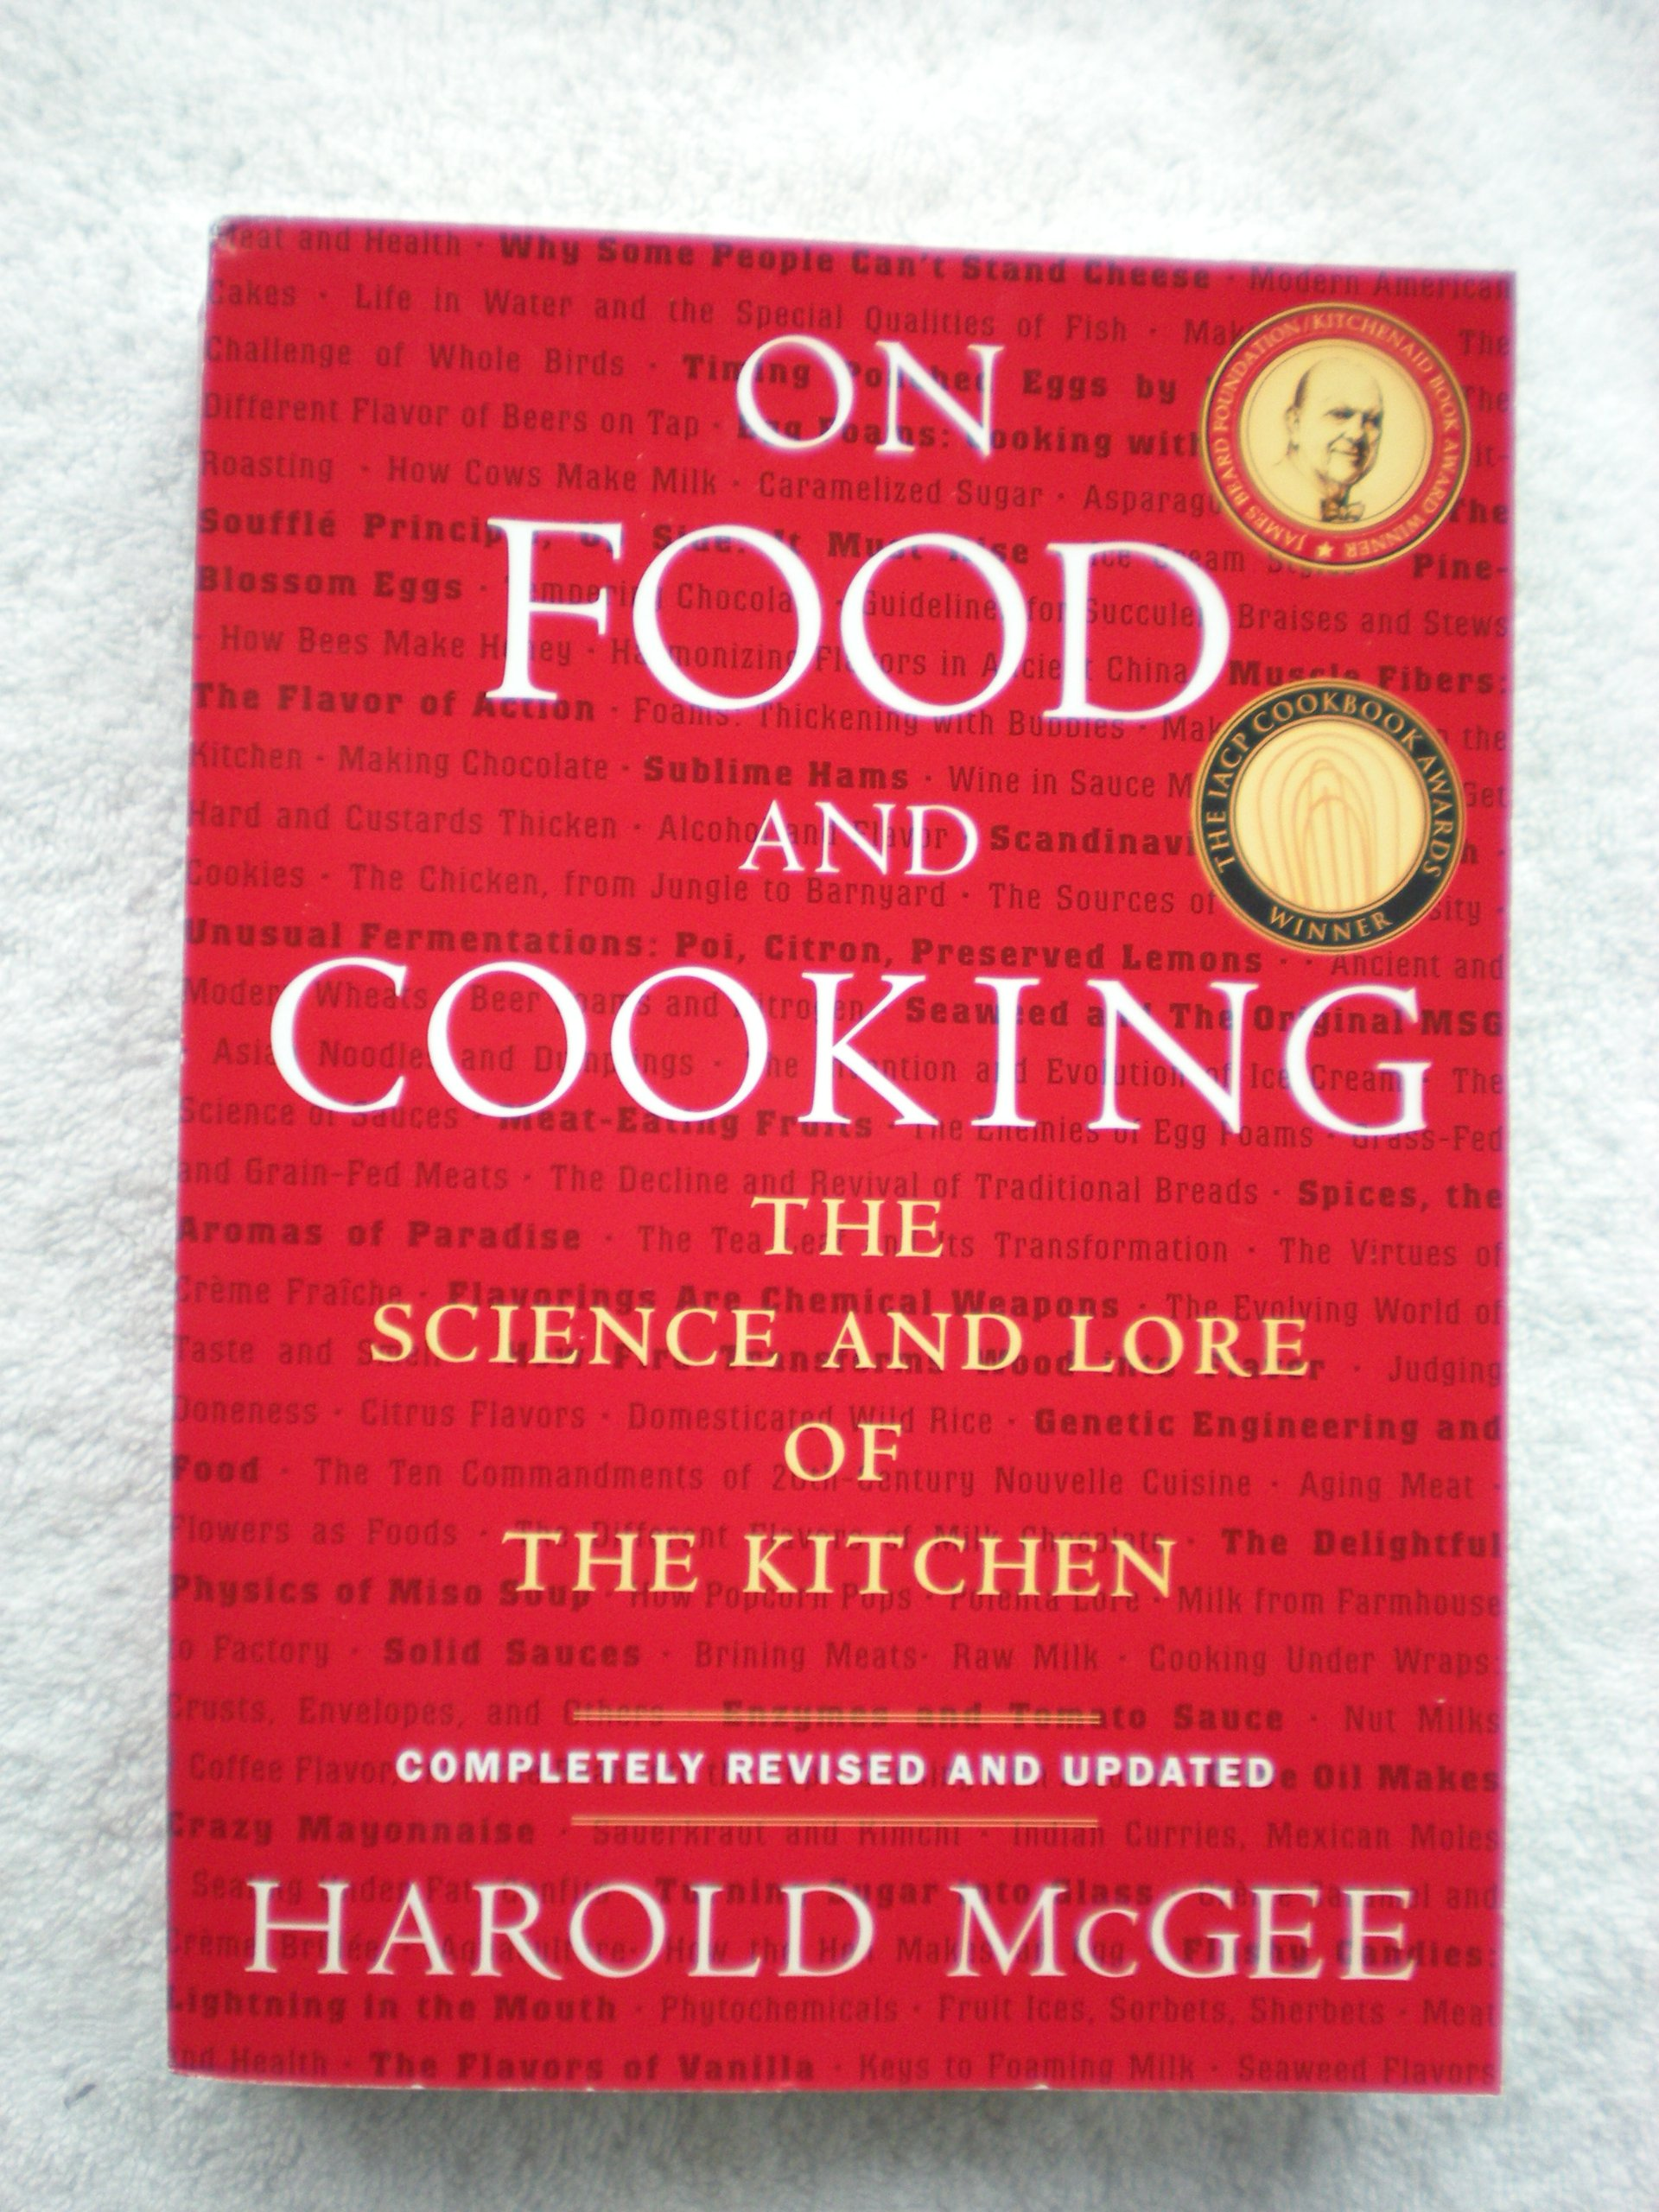 libri_cibo_mcgee_on_food_cooking